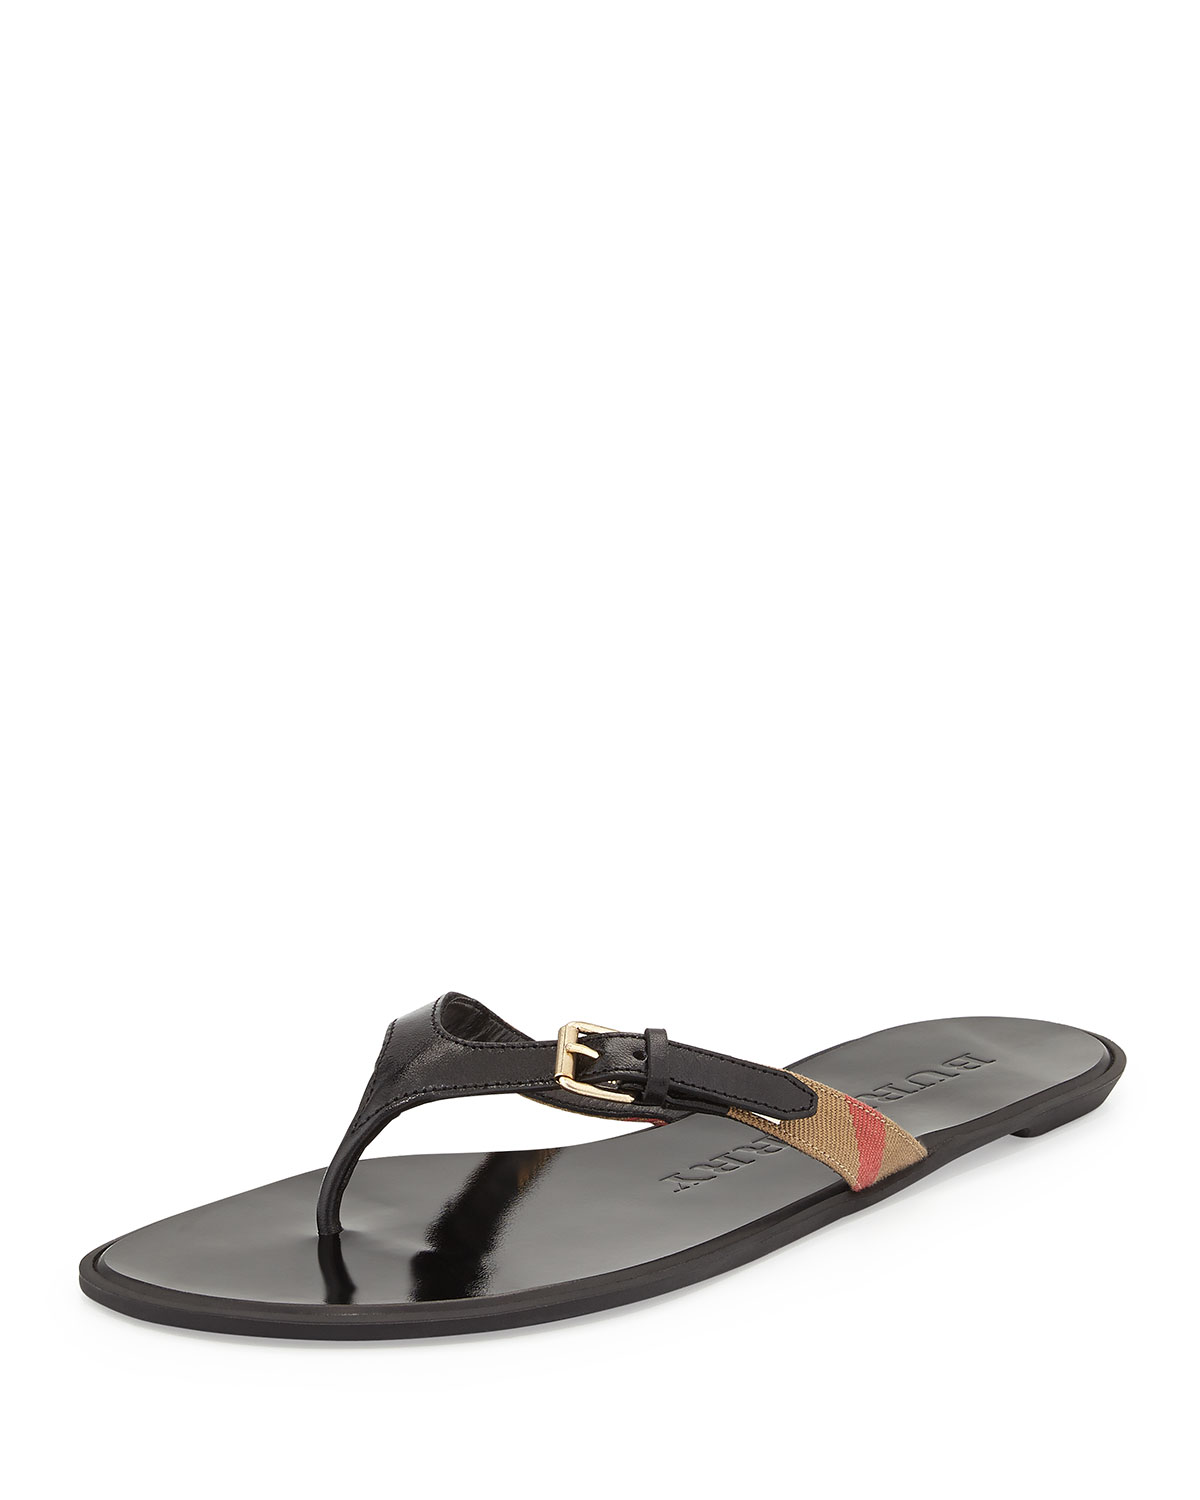 Burberry Nova Check Thong Sandals